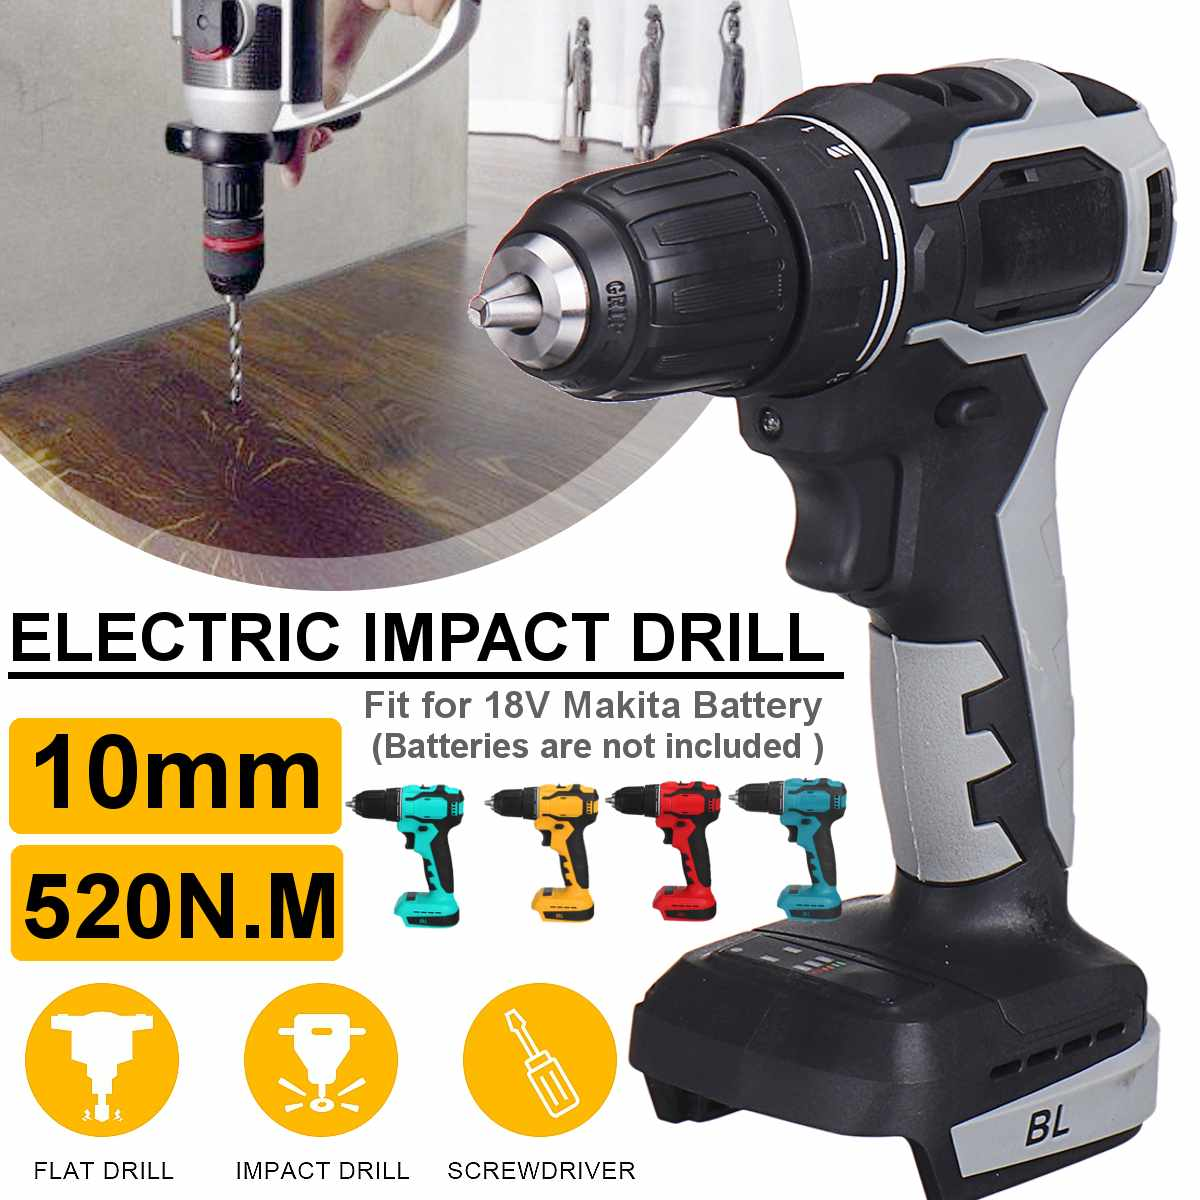 4000rpm 600W Electric Drill 520N m Cordless Impact Drill Driver Replacement 10mm Chuck for 18V Makita Battery